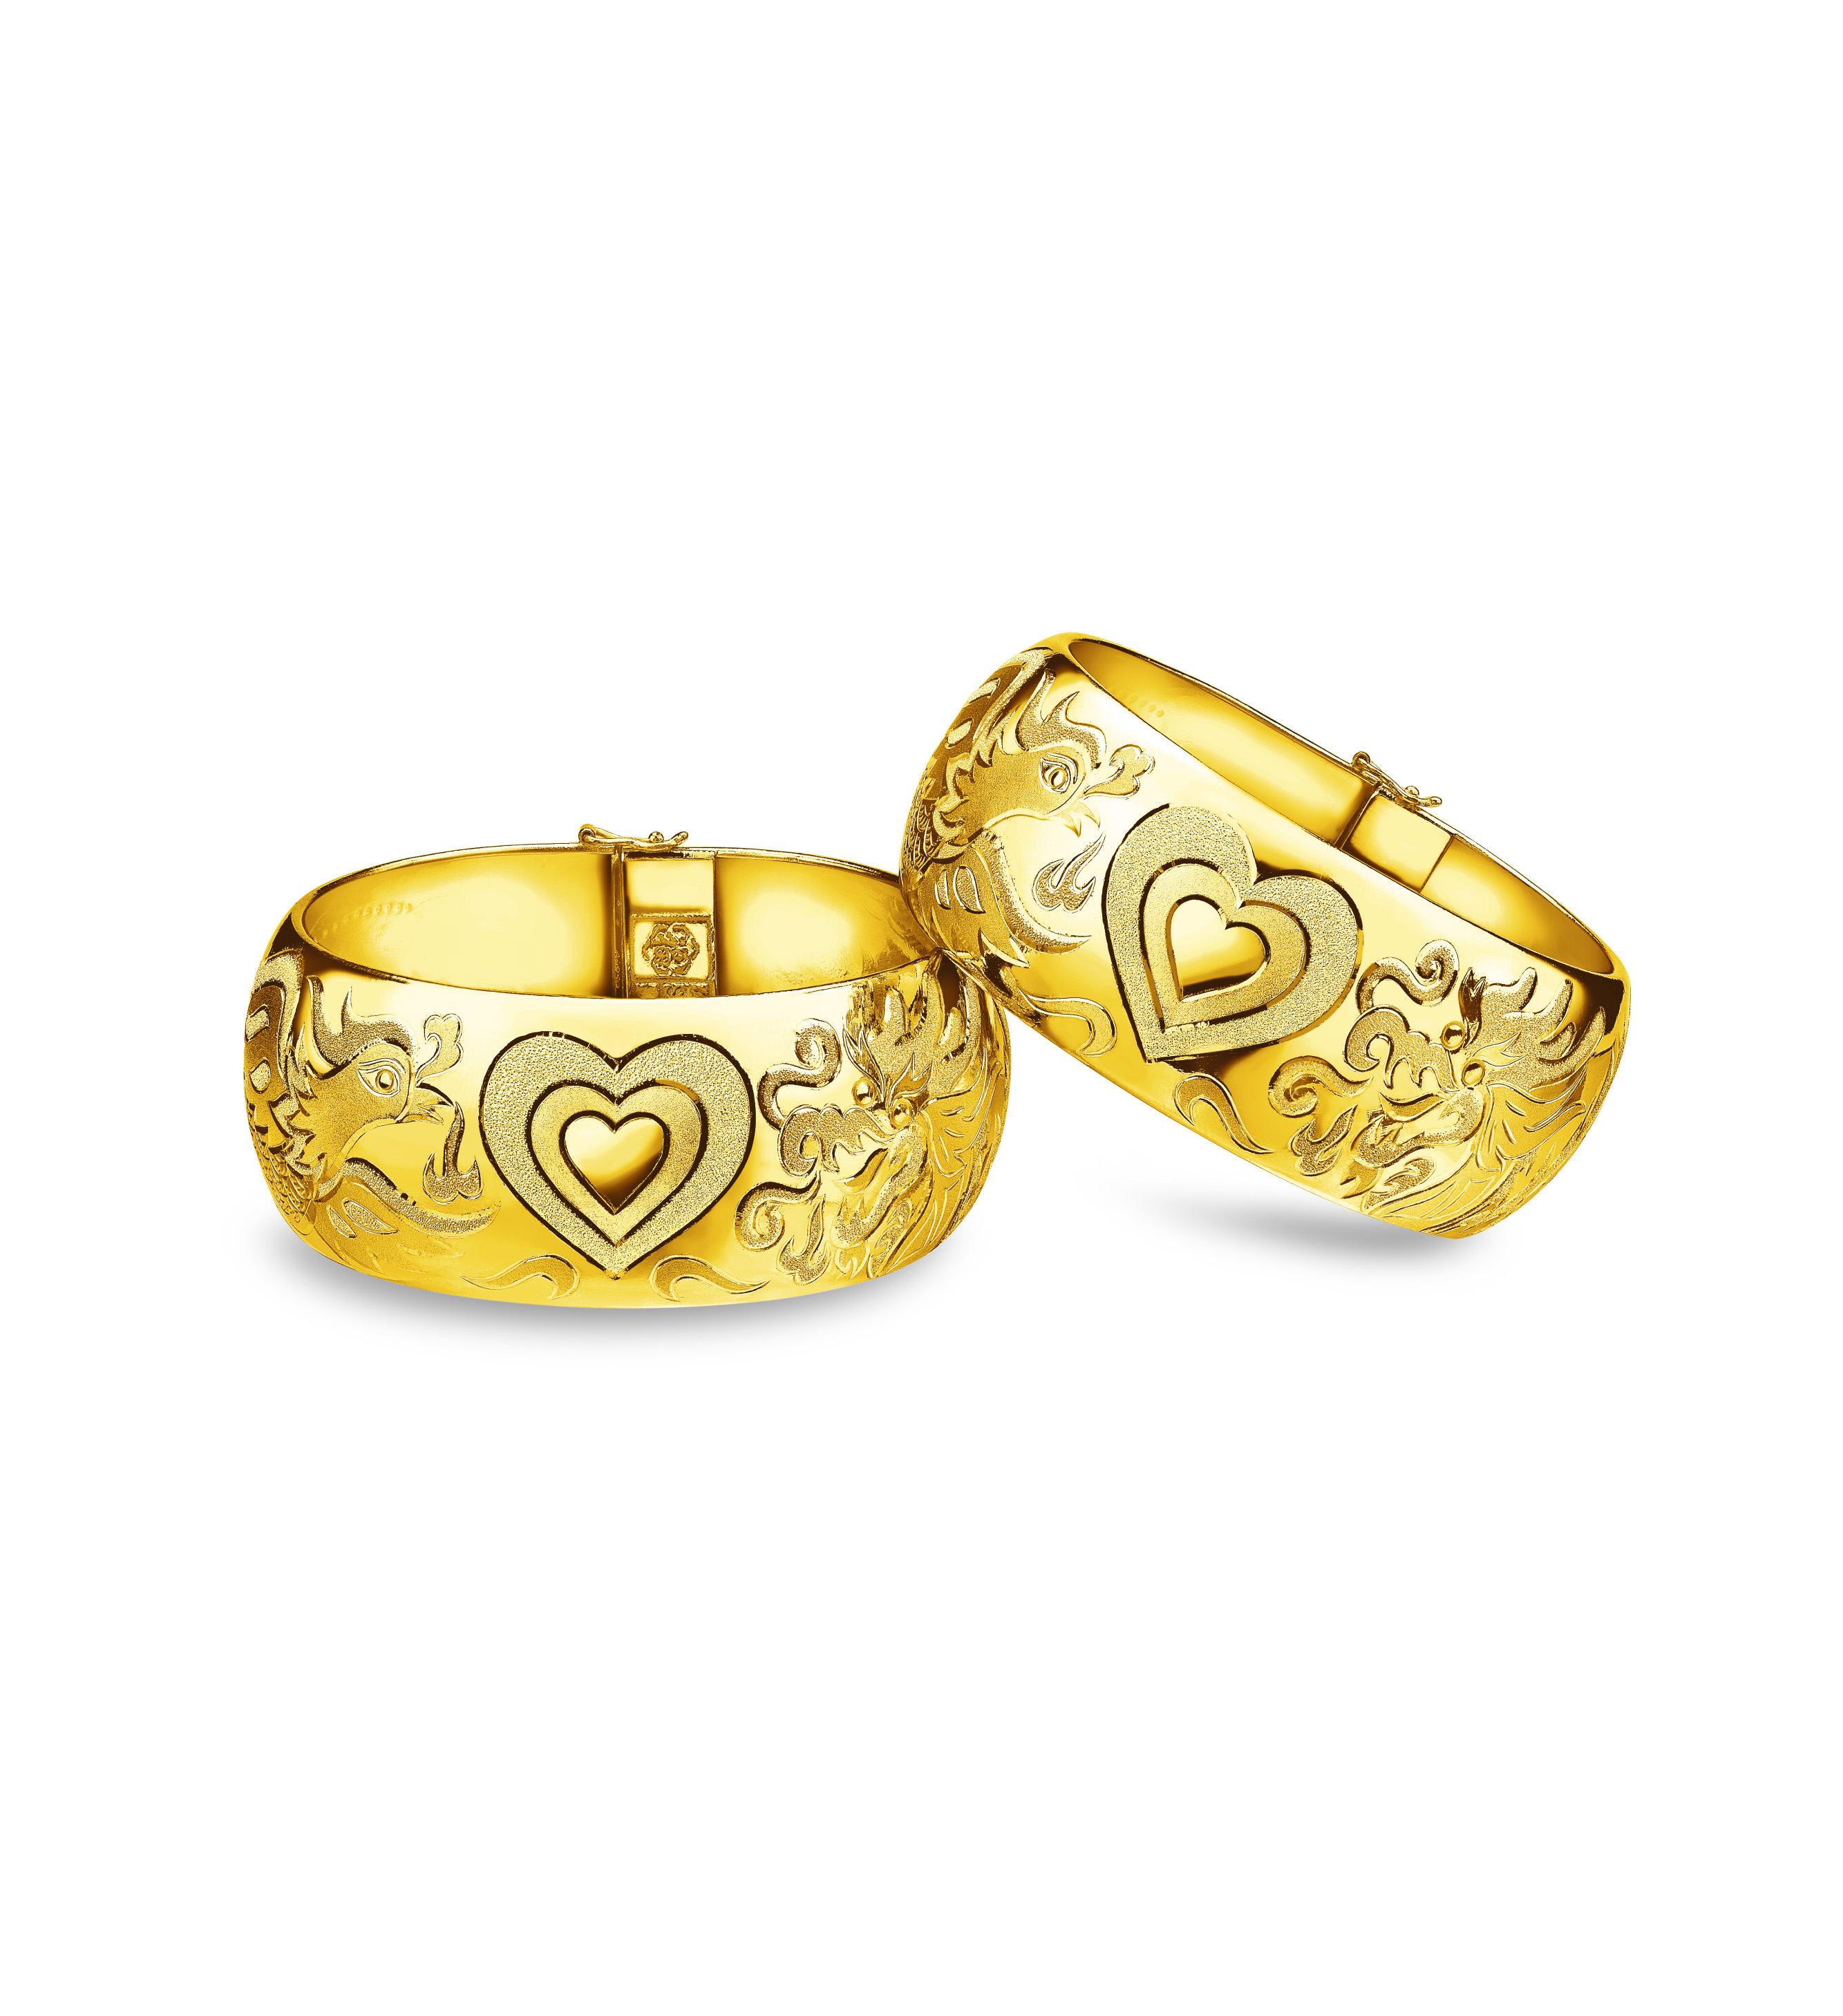 Beloved Collection The Love of Dragon & Phoenix Bangle